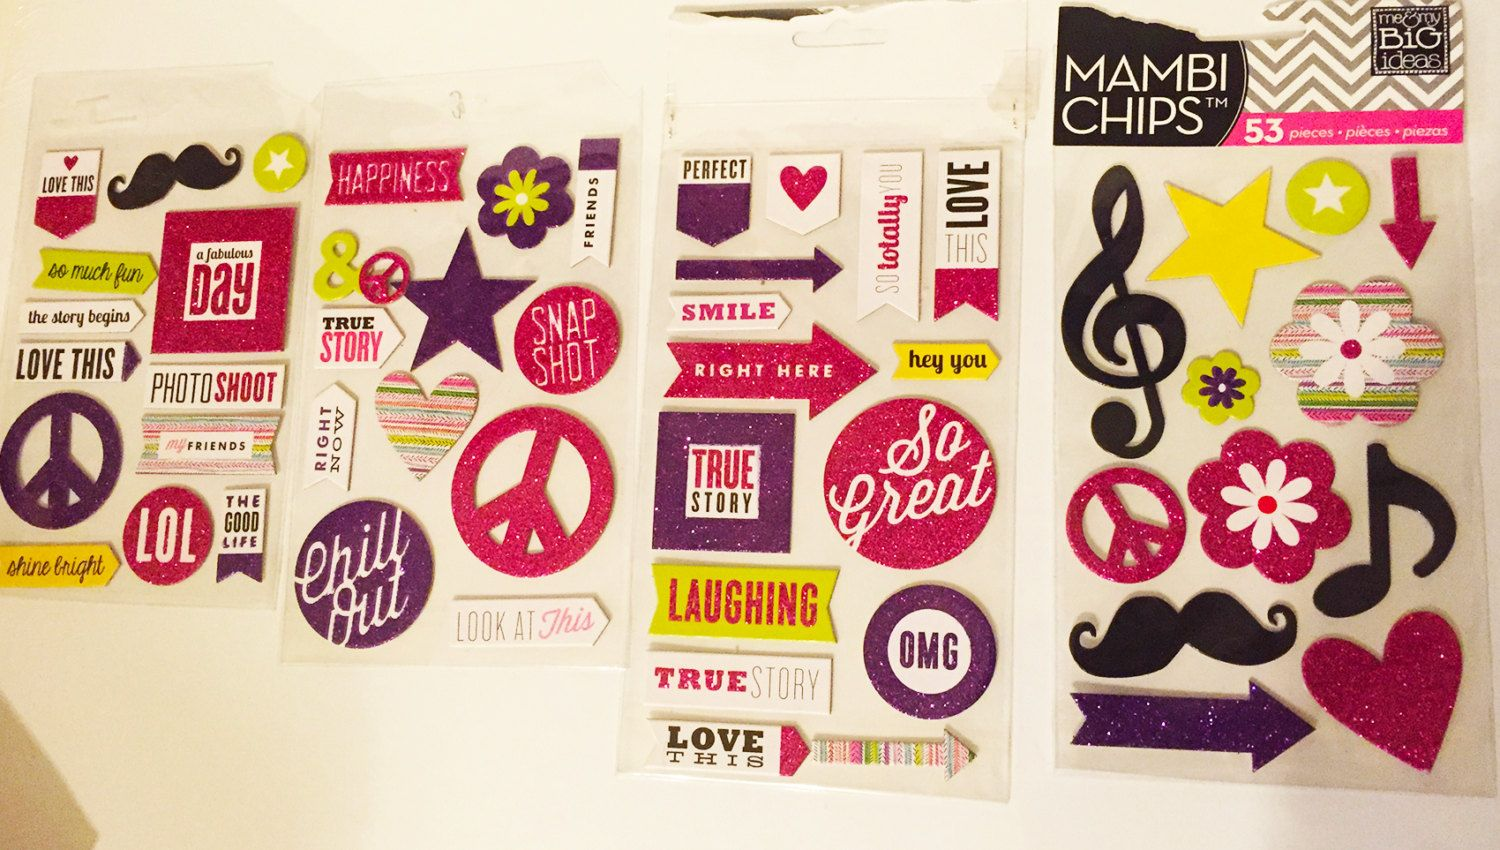 Mambi Chips Scrabook Stickers Premium Stickers 4 pages-53 stickers-scrapbook page ideas, scrapbook ideas, by sweetpeacejewelry on Etsy